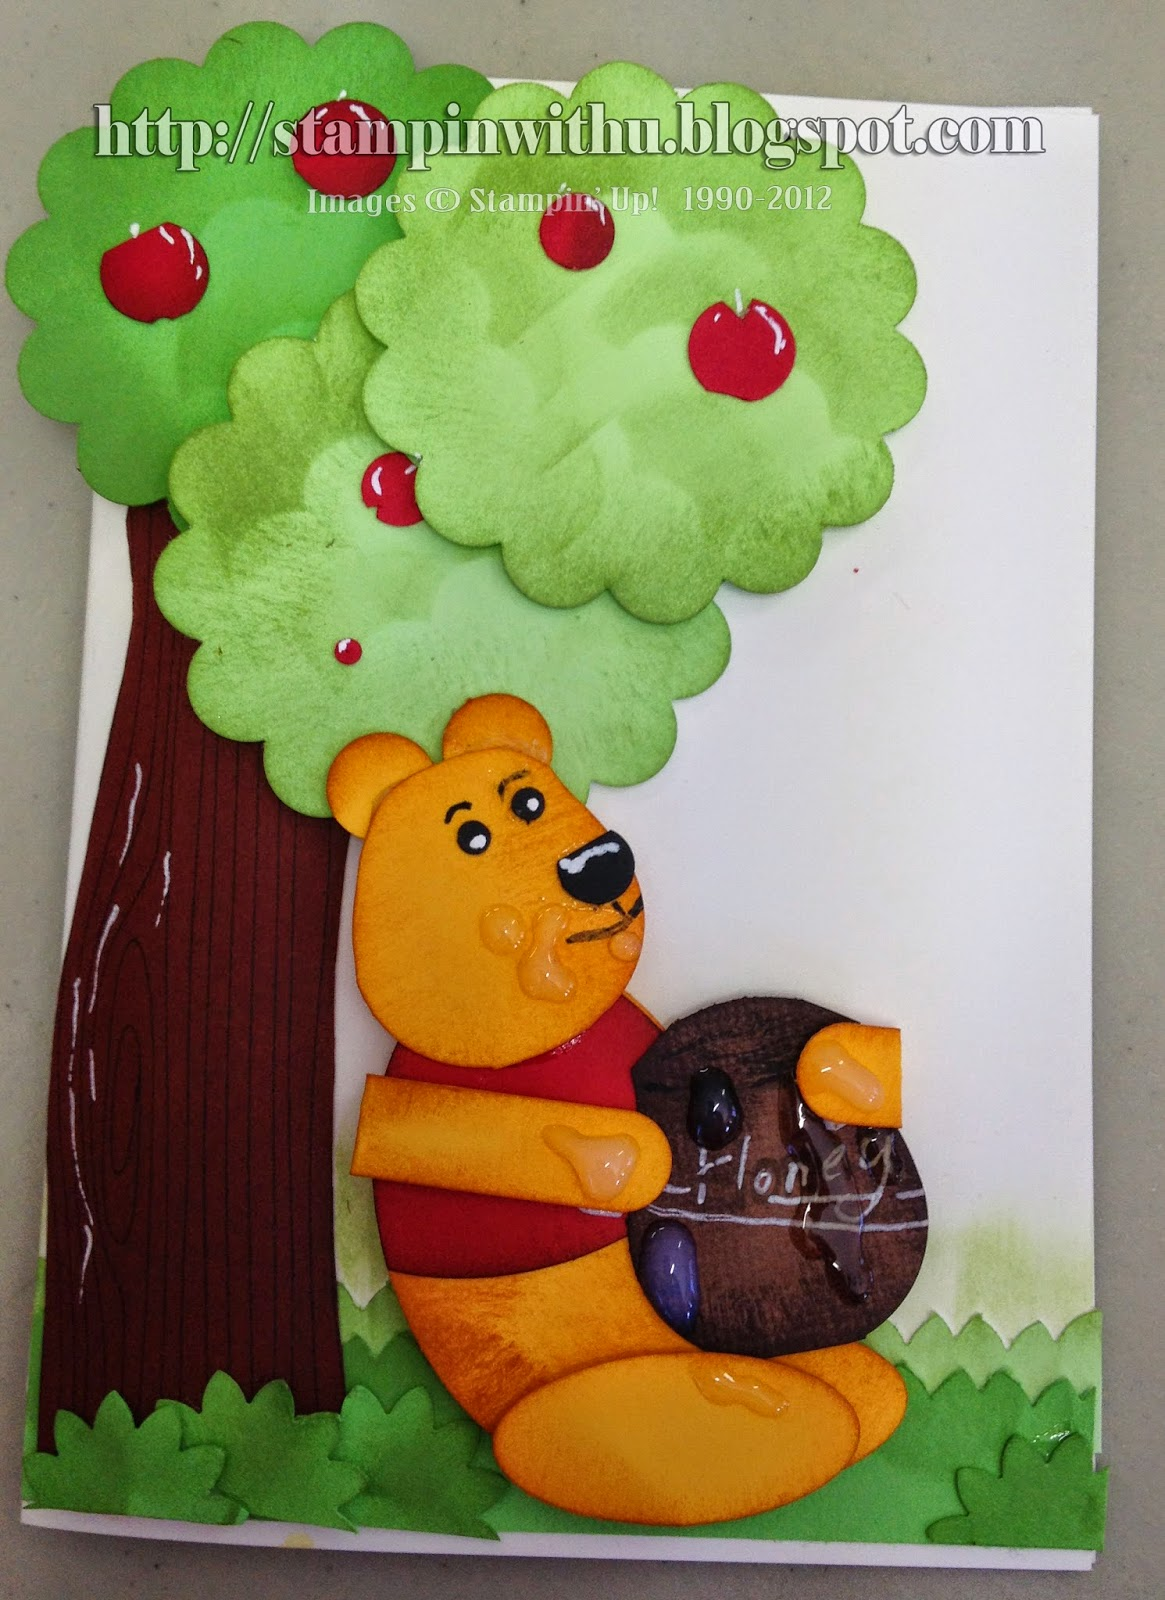 Pooh Bear Under the Apple Tree